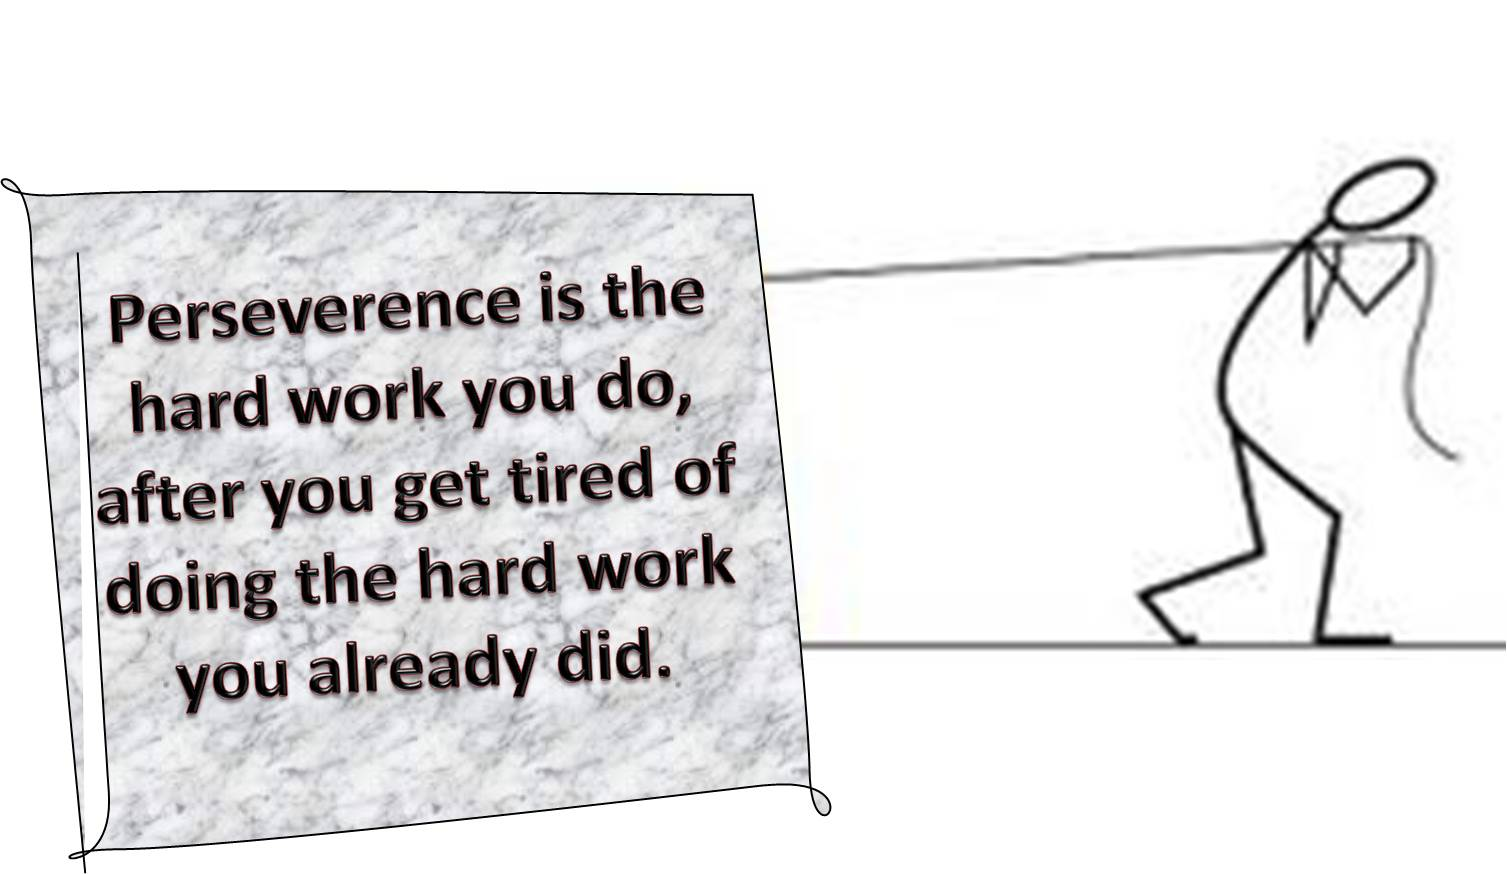 Working quote #4